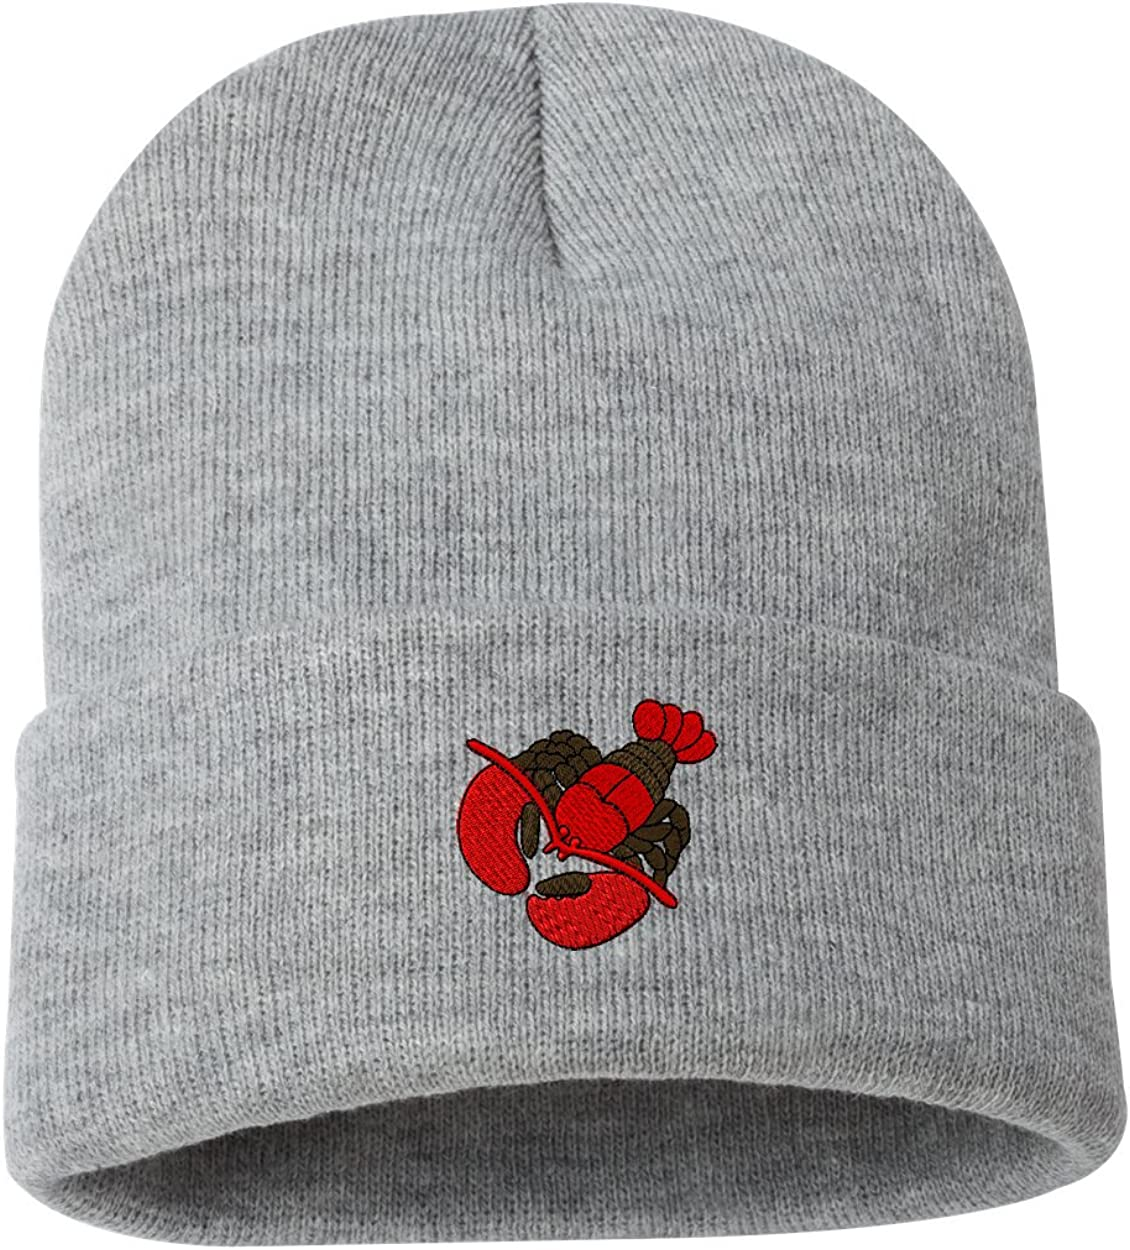 Lobster Custom Personalized Embroidery Embroidered Beanie